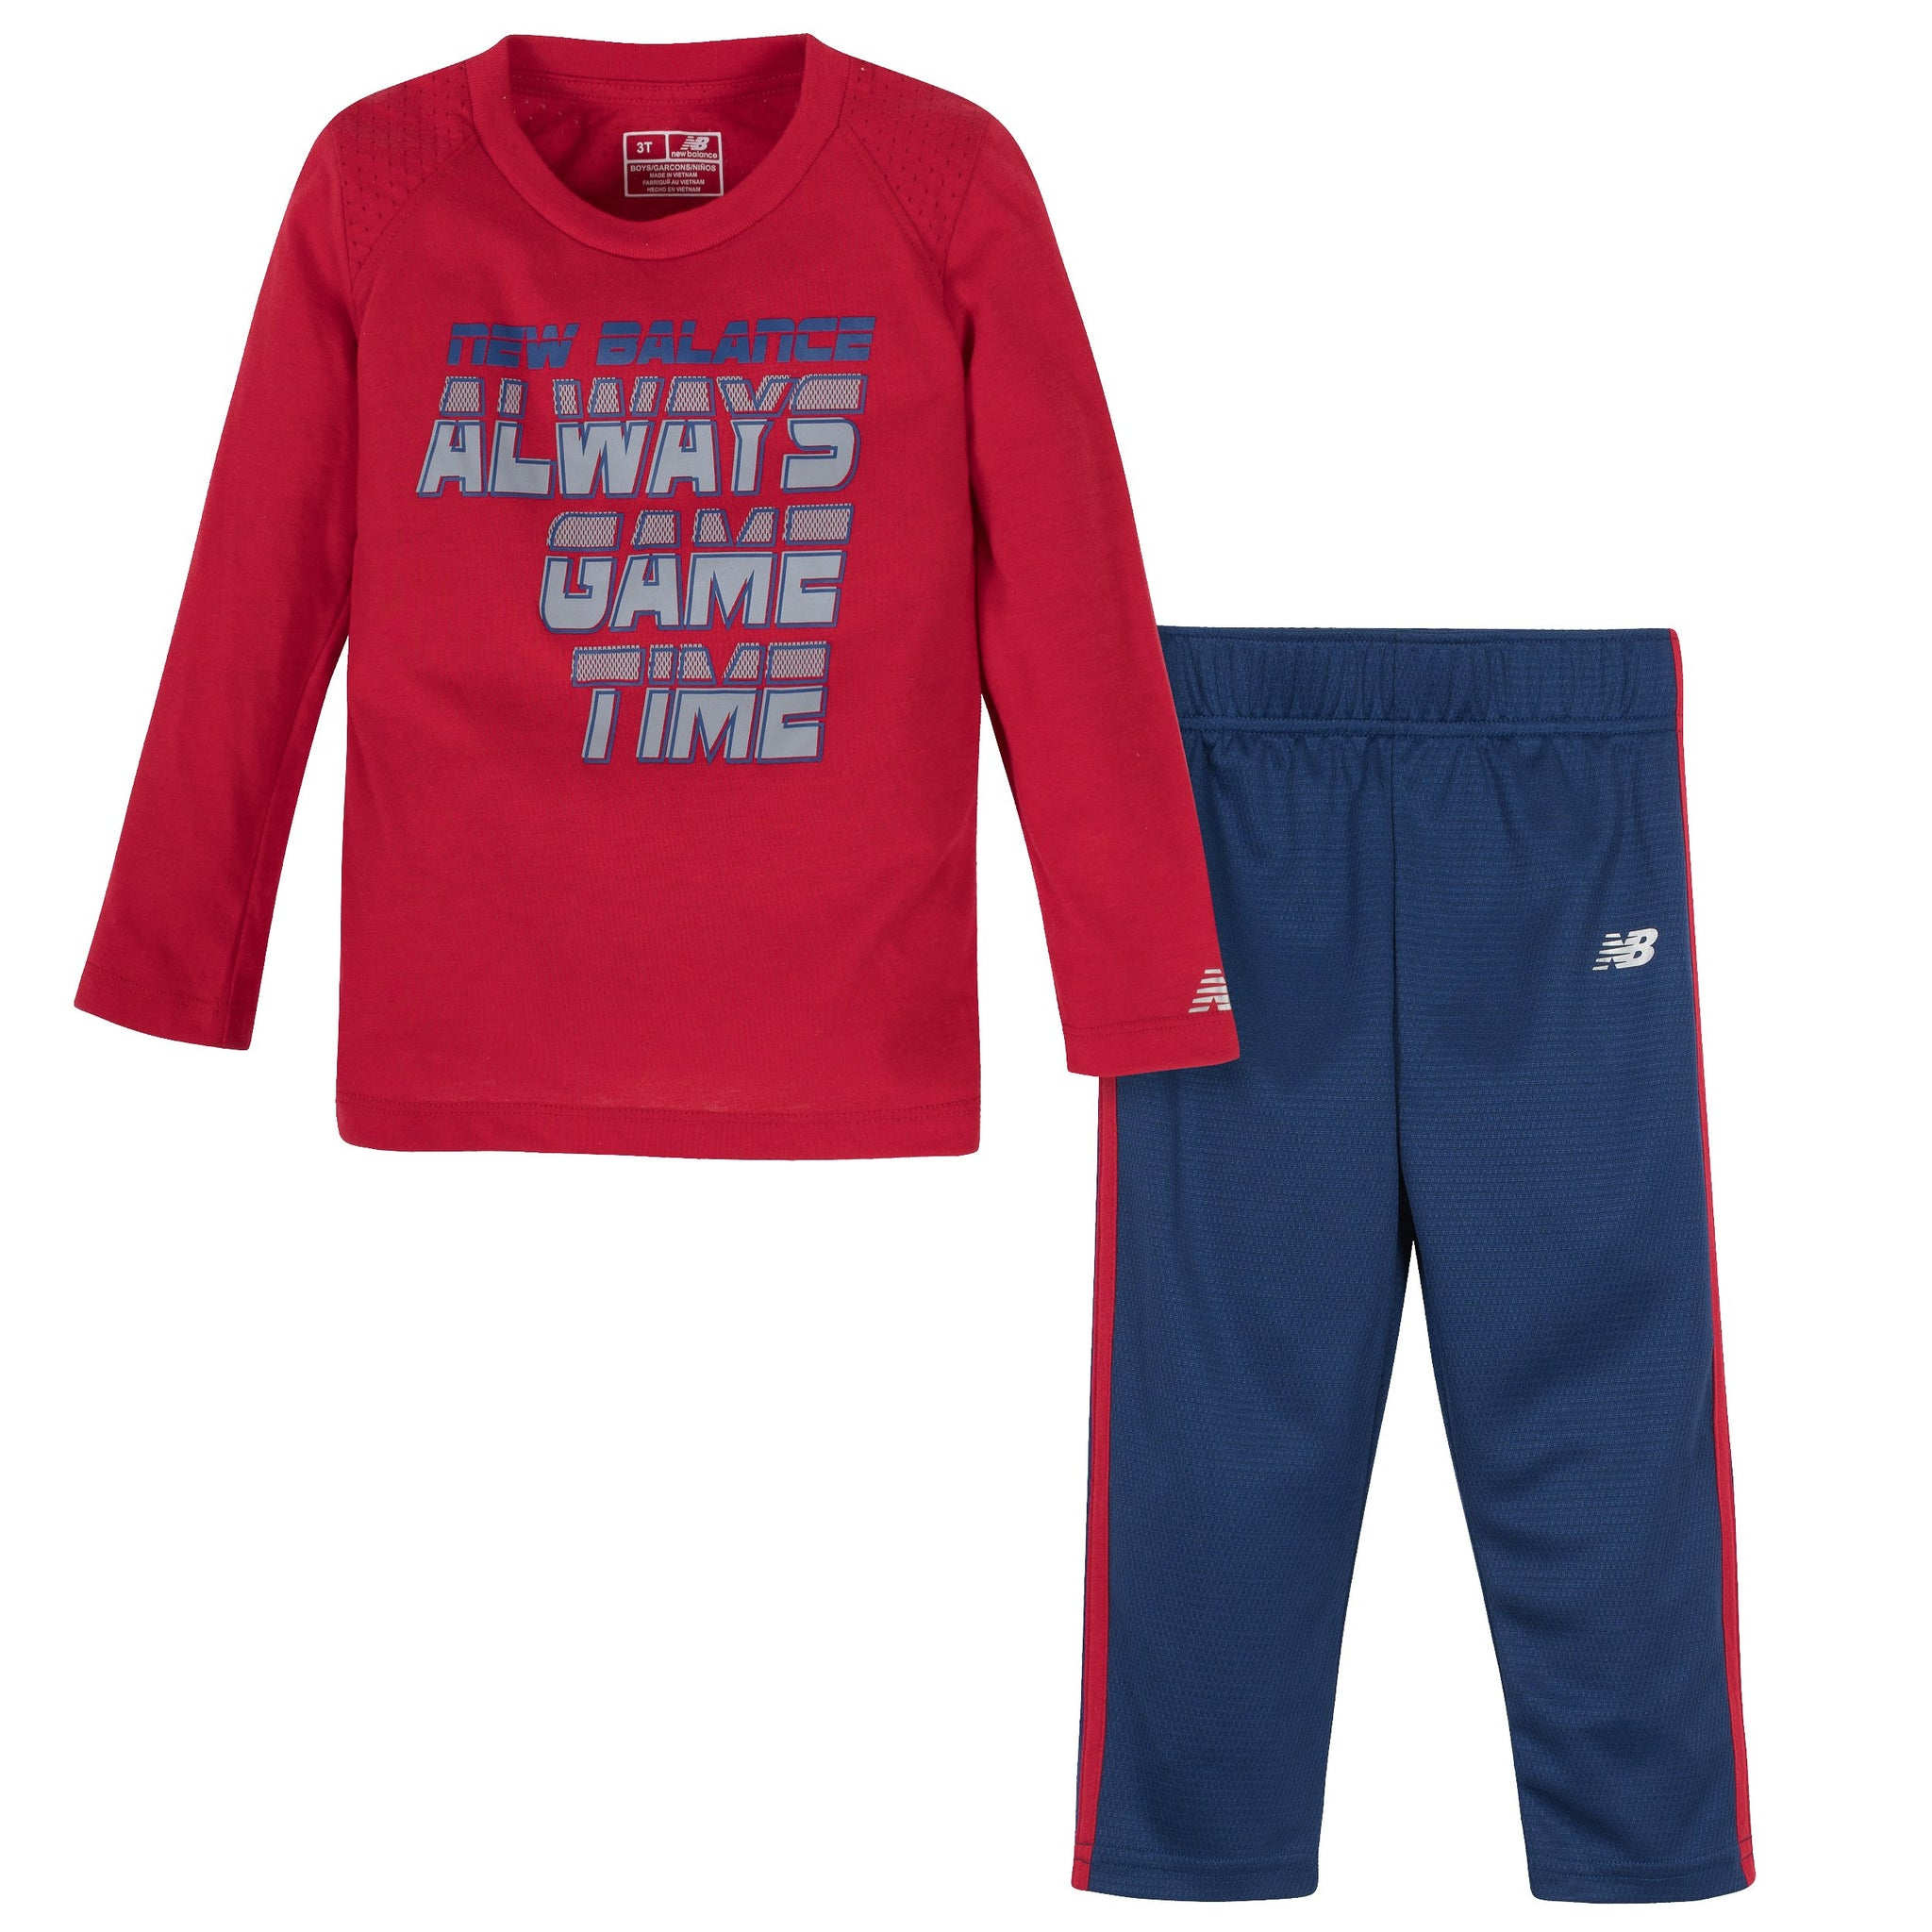 Boys' Tempo Red and Techtonic Blue Long Sleeve Shirt and Pant Set-Gerber Childrenswear